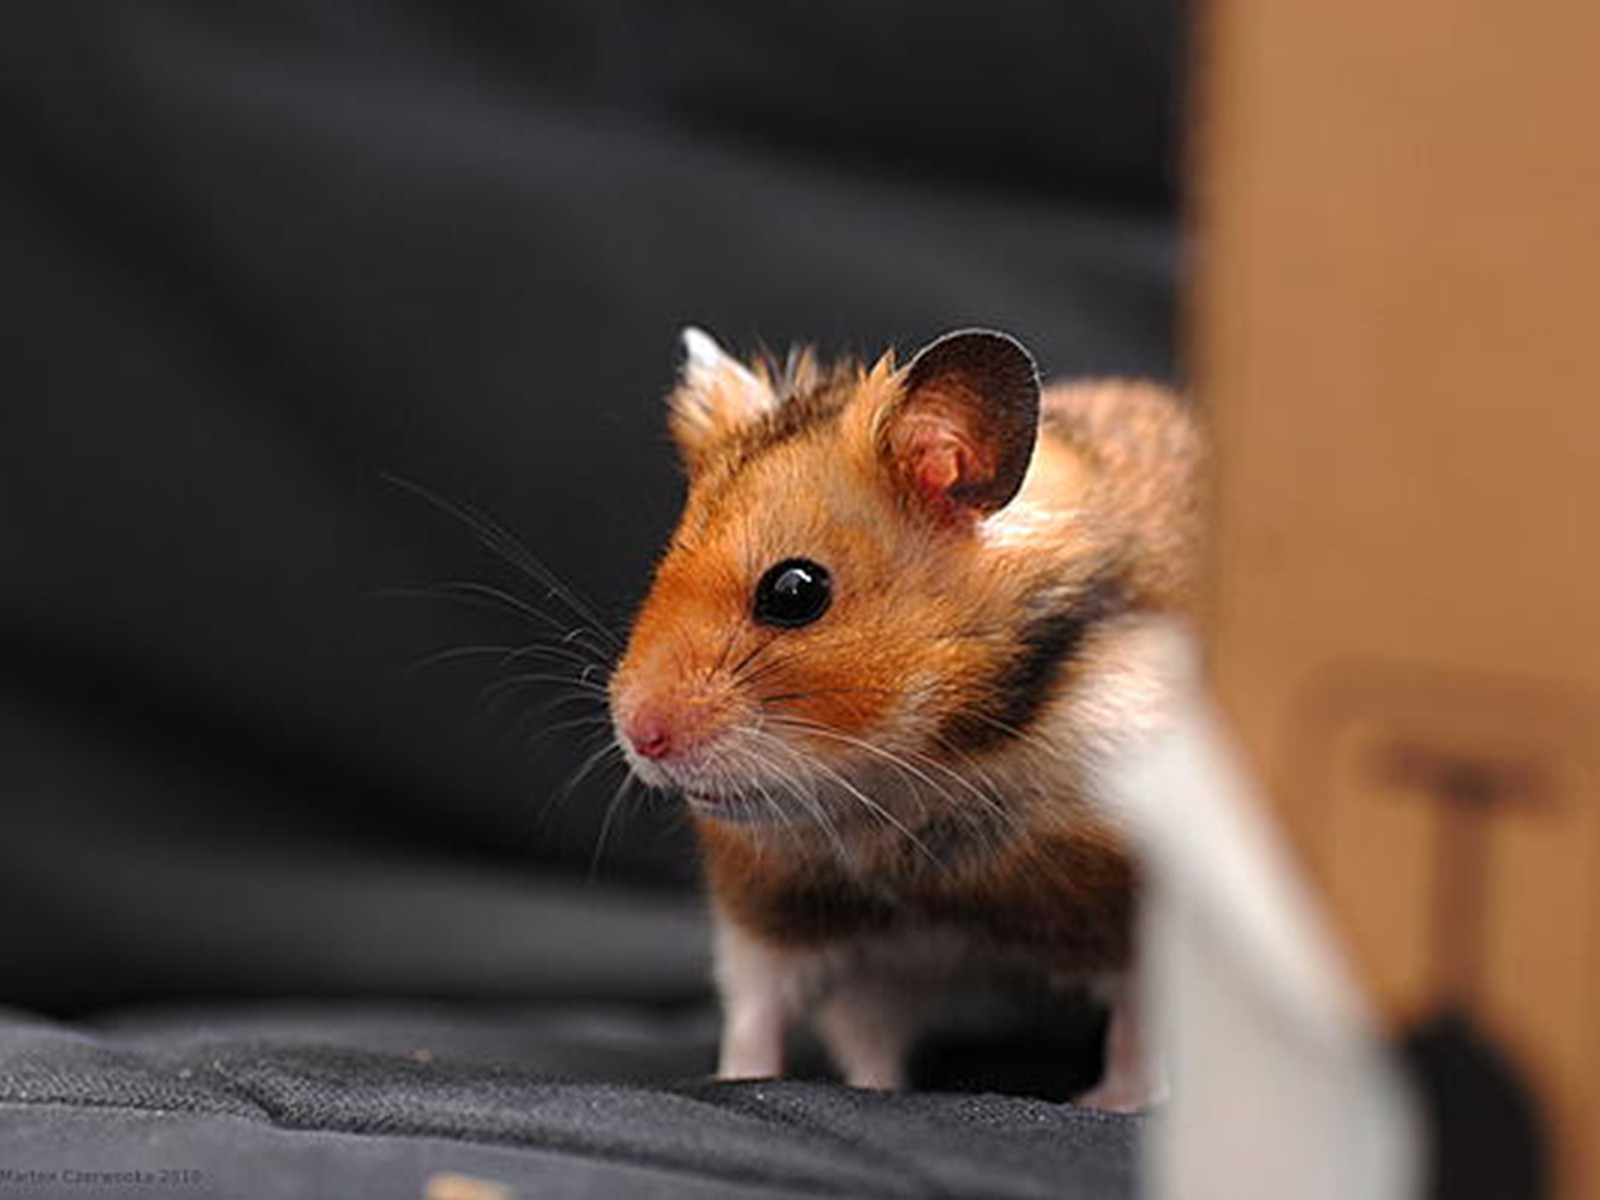 Cute Hamster WallpapersOther Pets Wallpapers Pictures Download 1600x1200